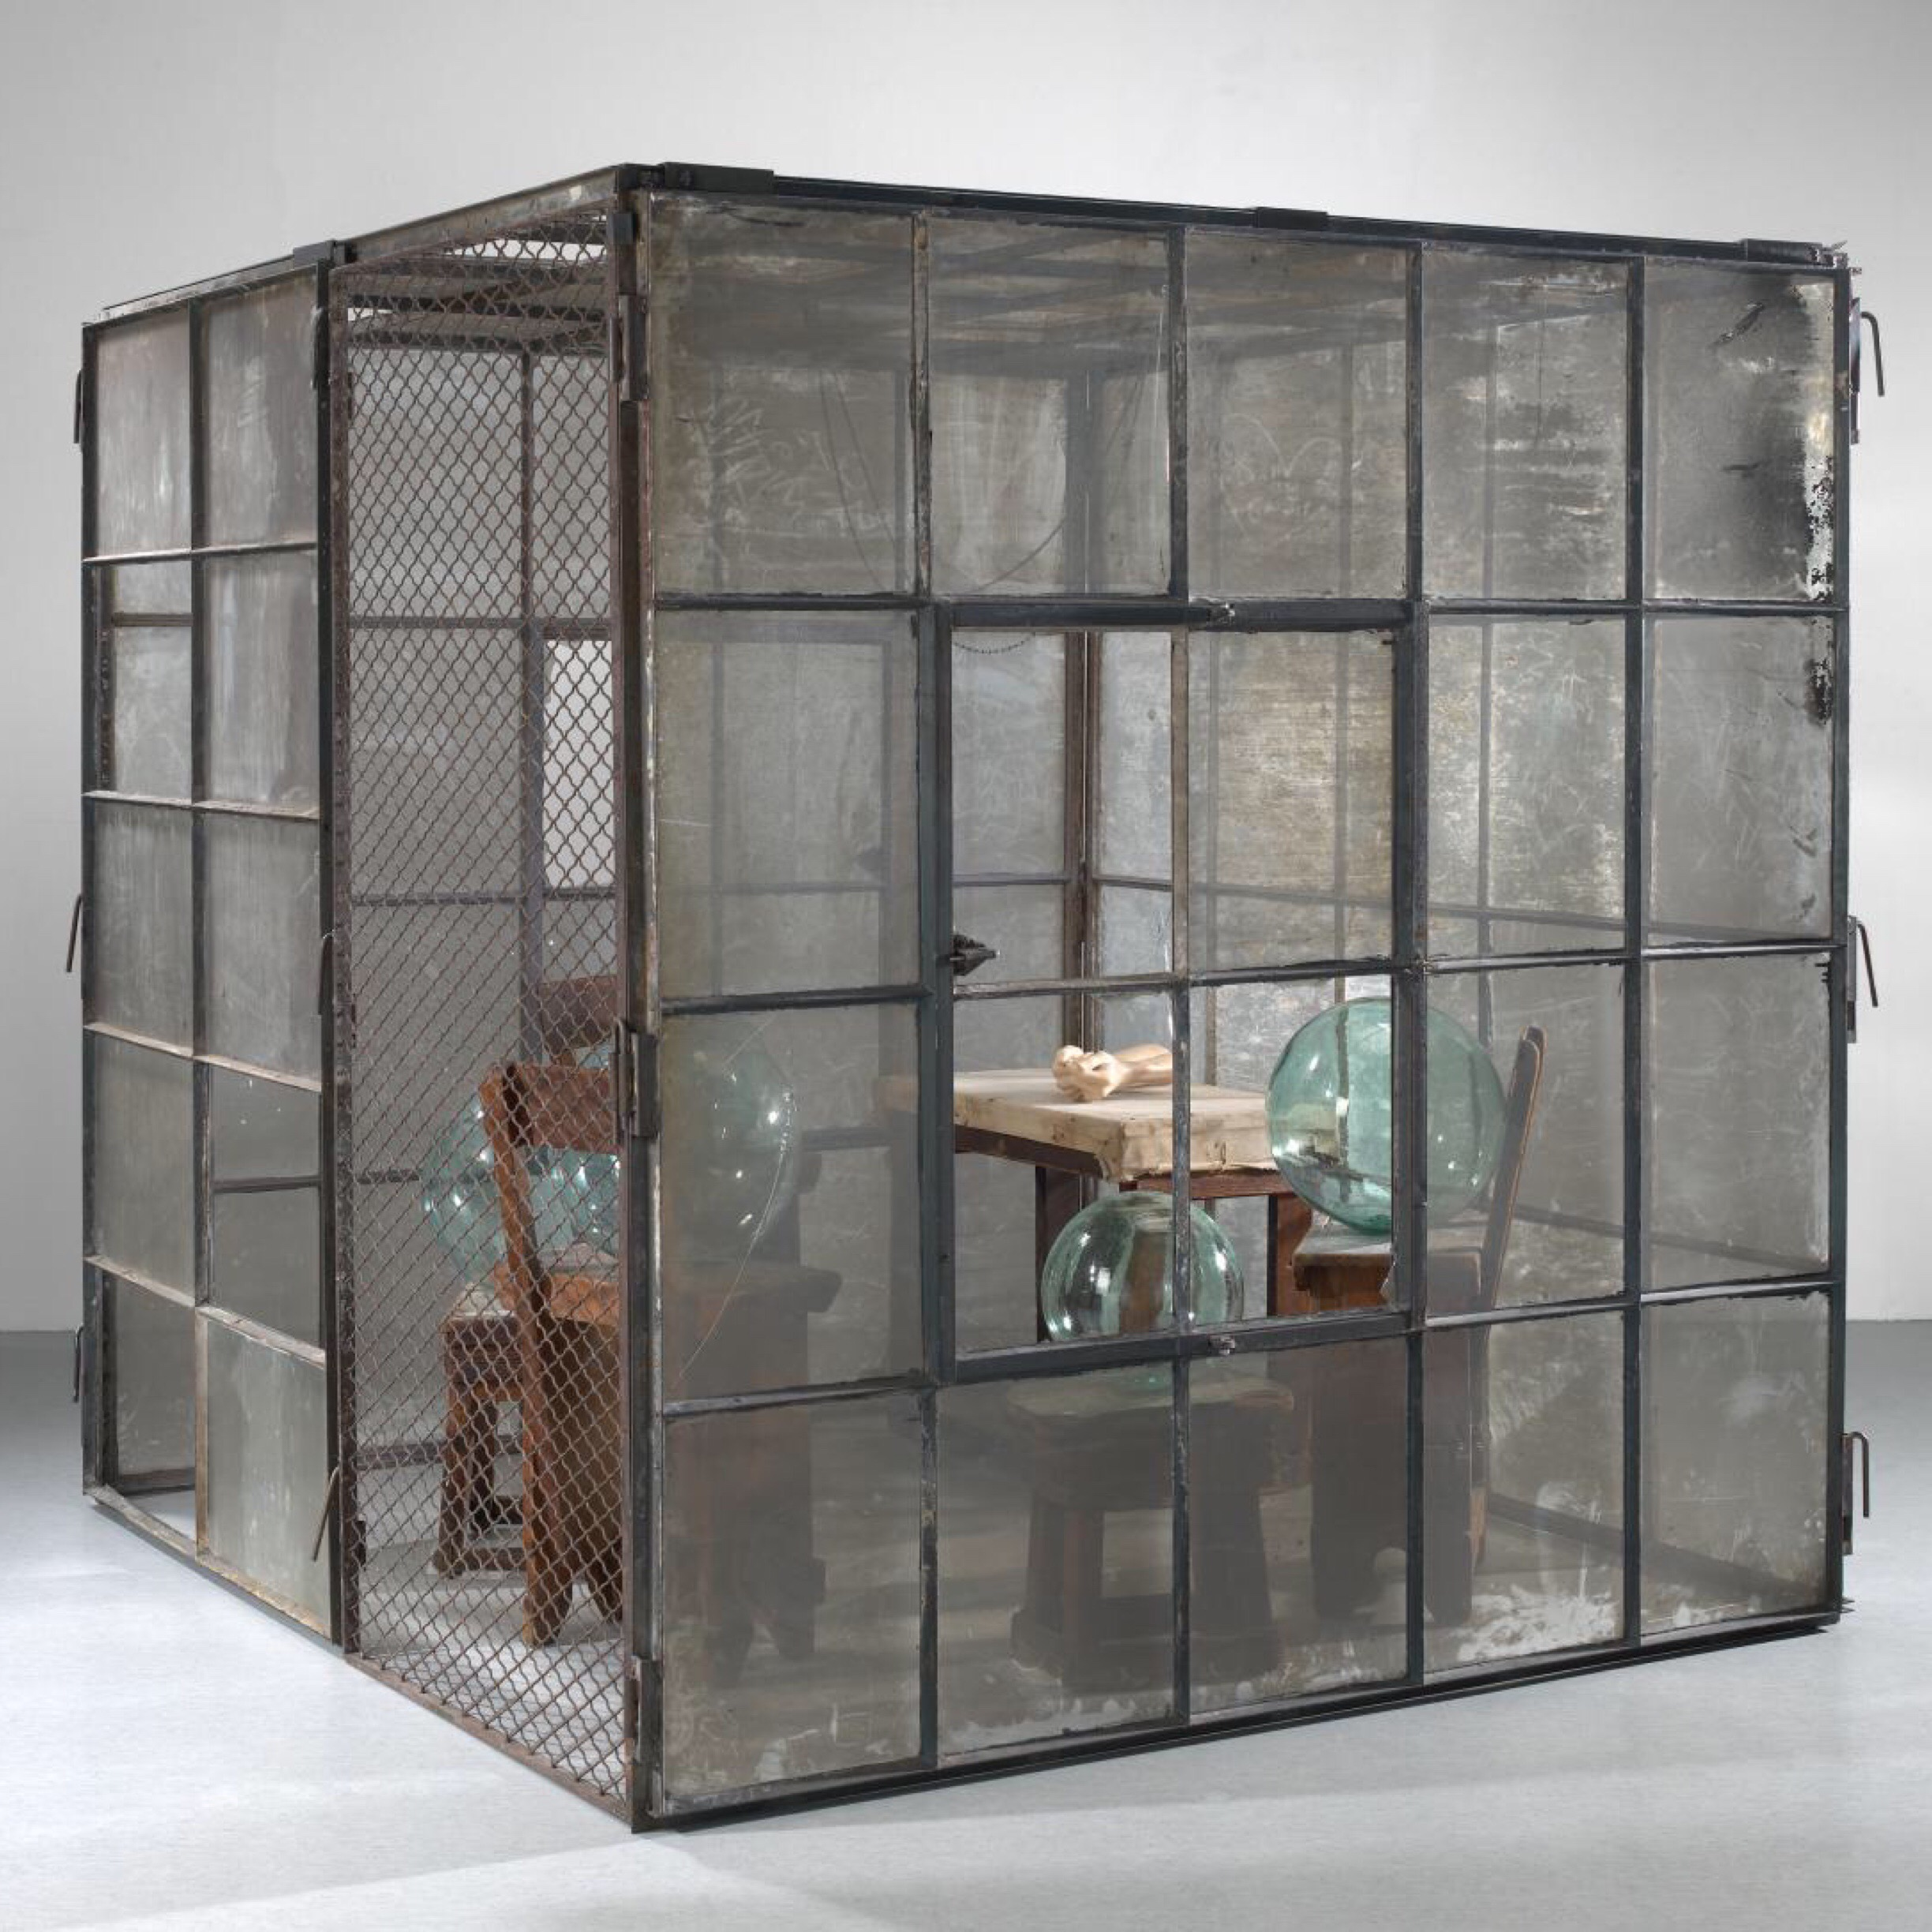 Louise Bourgeois, Cell 1990-1993